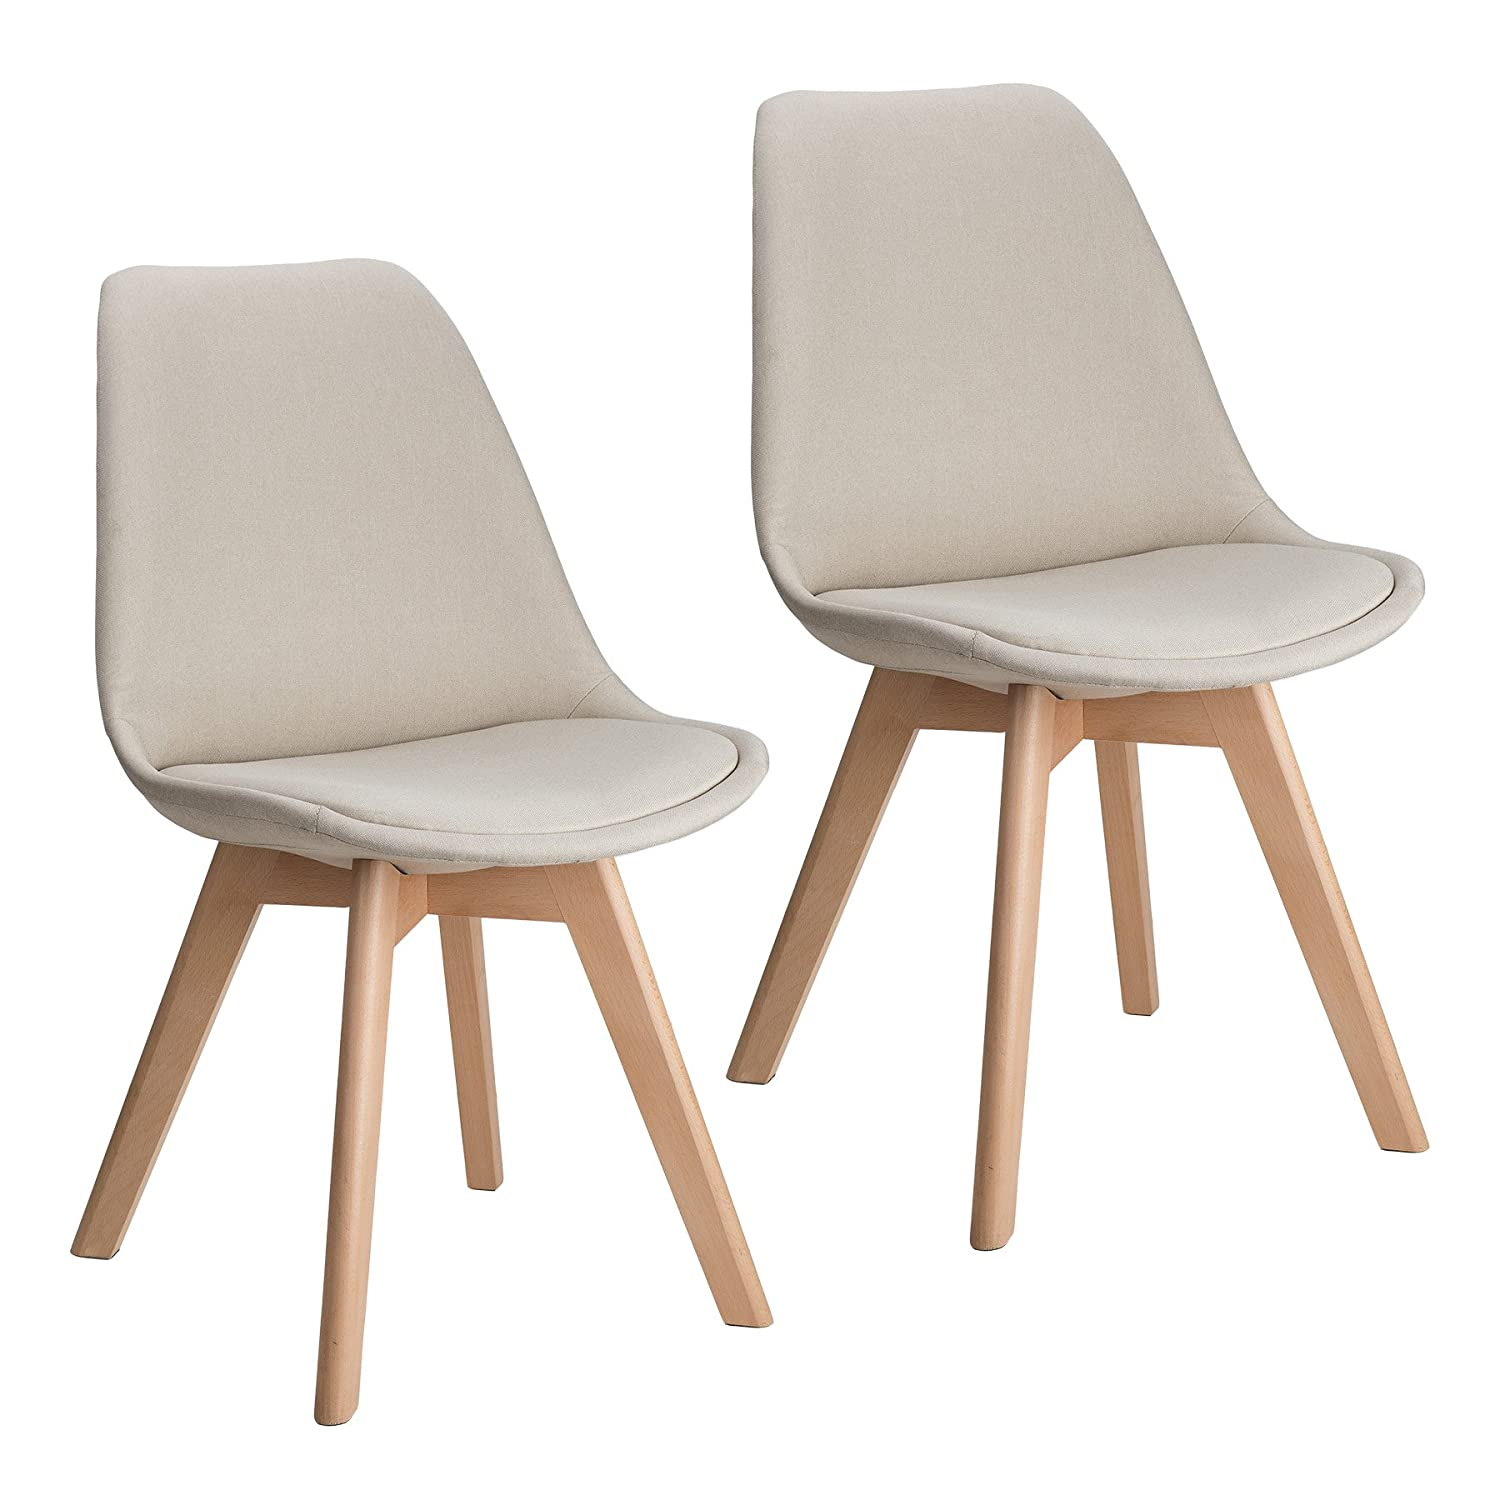 CO-Z Contemporary Mid Century Dining Chairs, Modern Side Chair for Kitchen,  Office, Living Room, Bedrooms and More (Sets of 2, Beige)